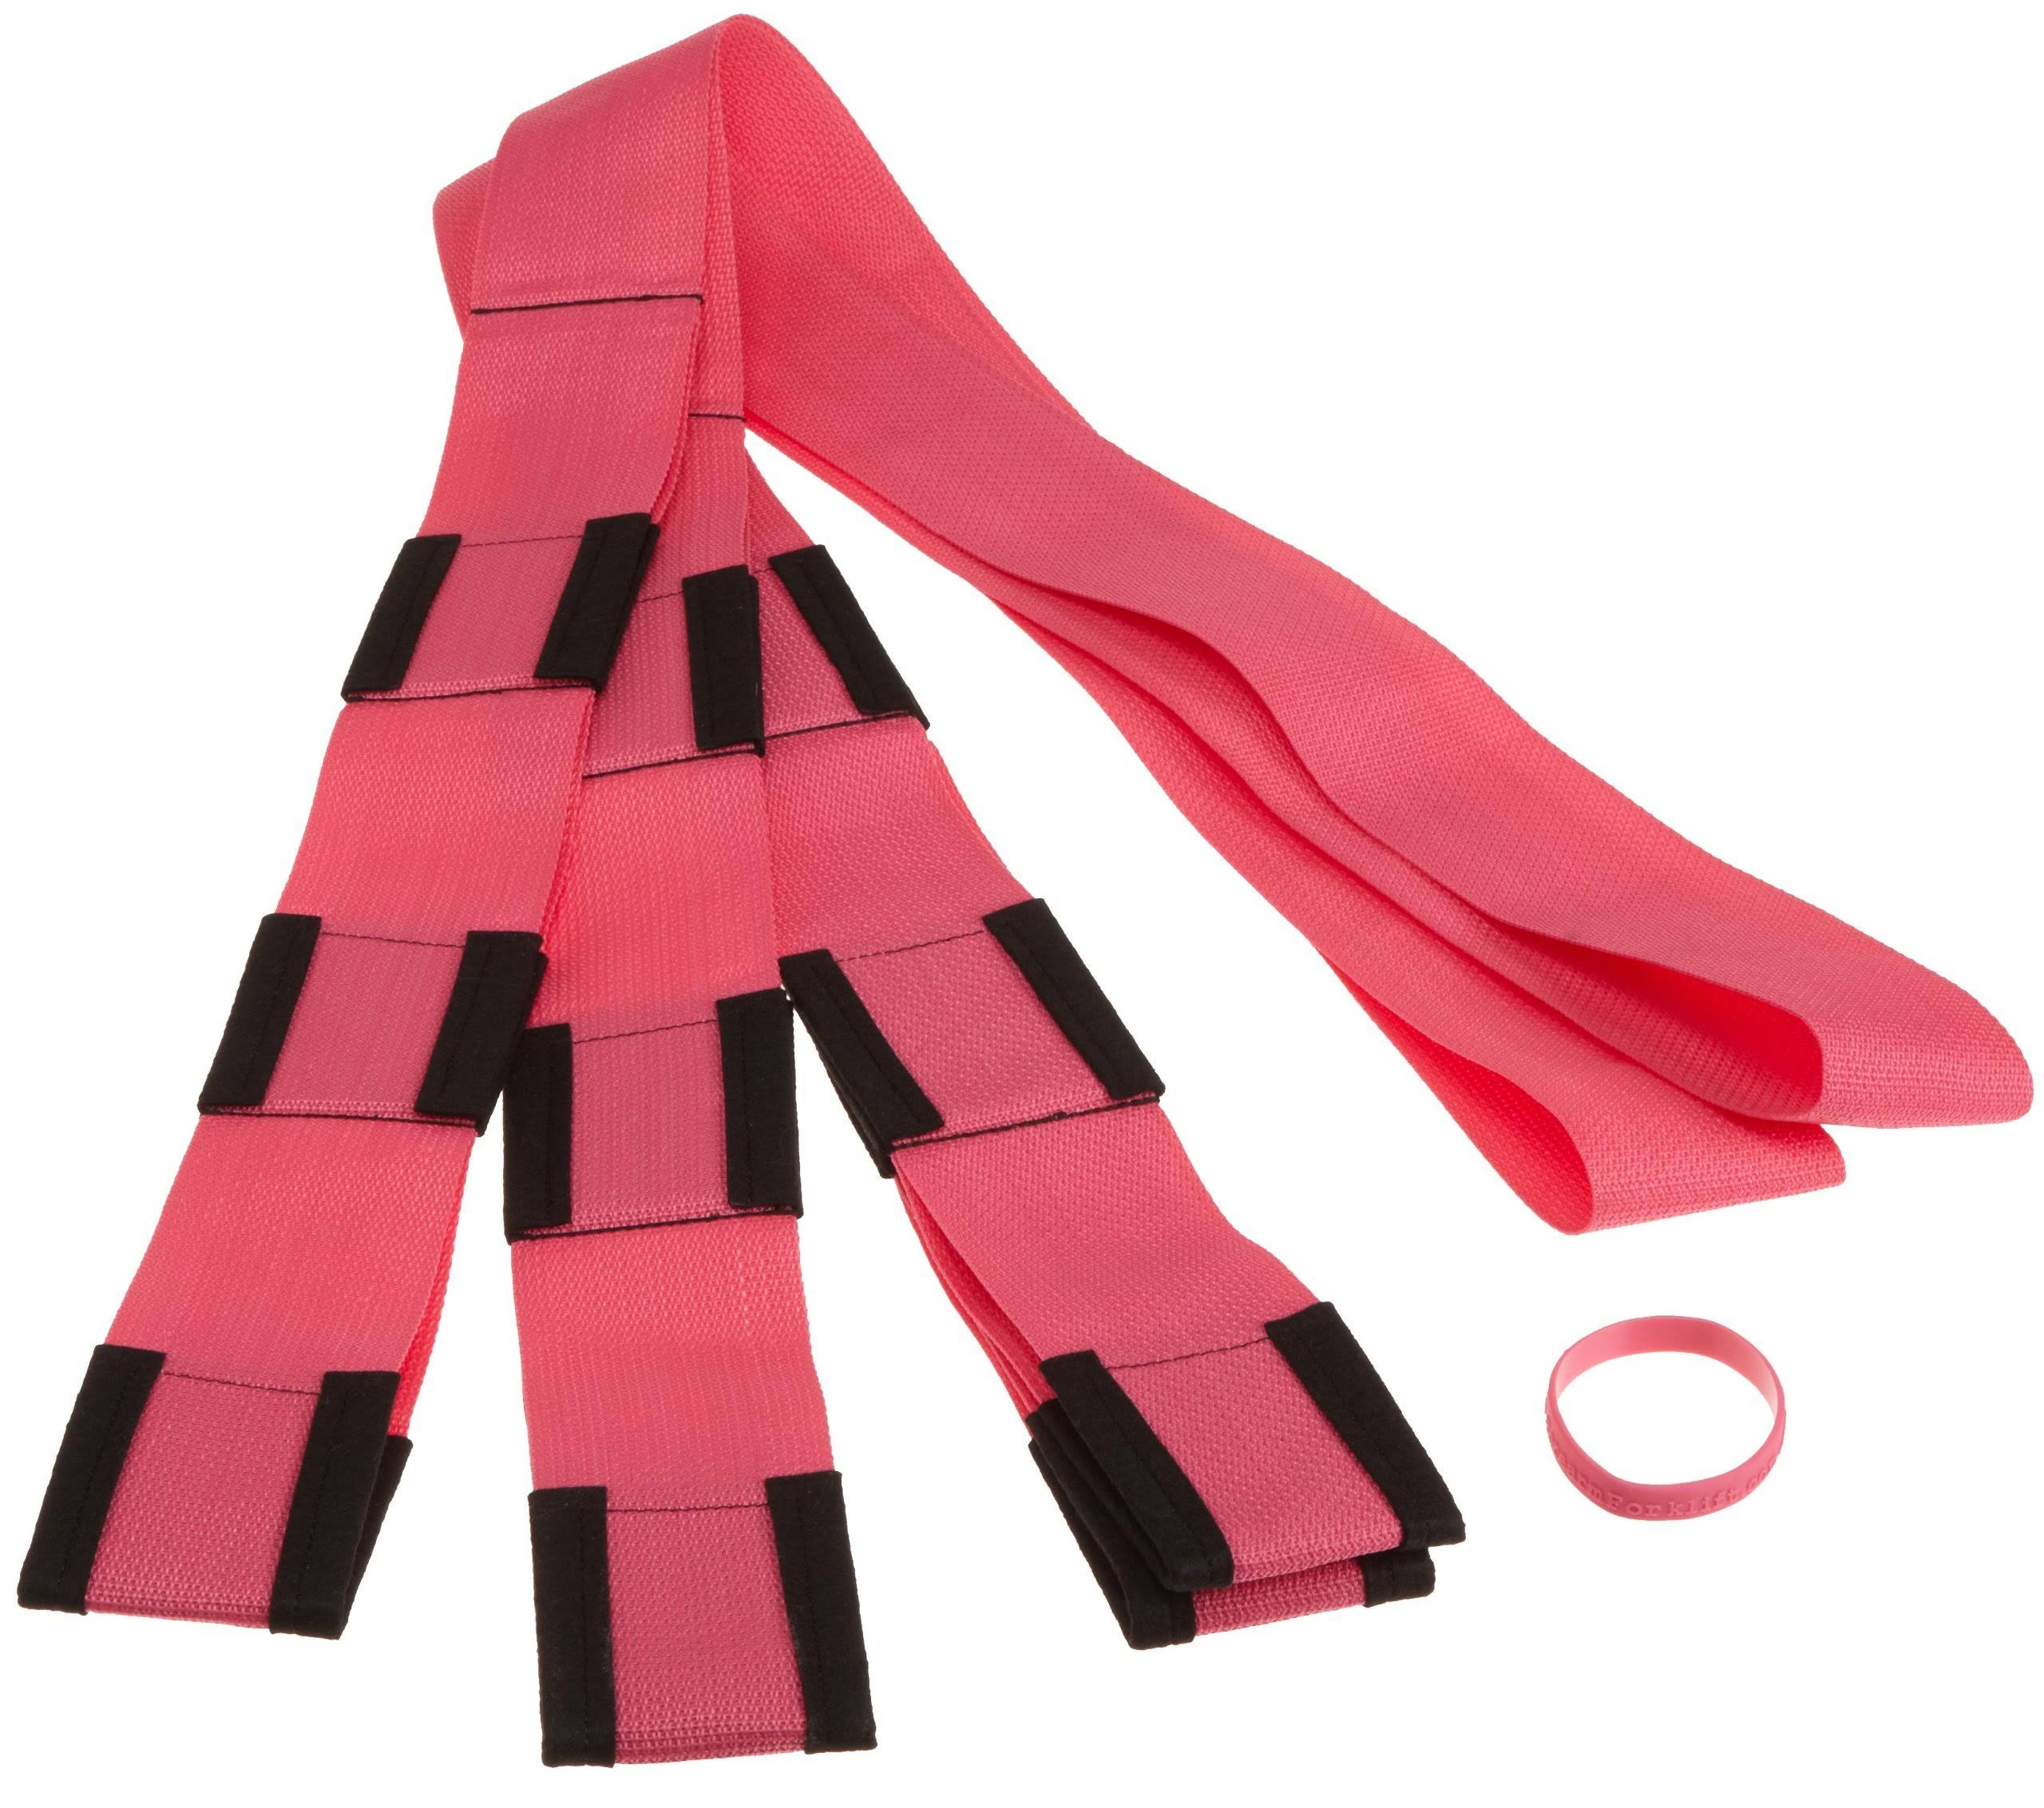 Forearm Forklift Lifting and Moving Straps, Pink, Model L74995P